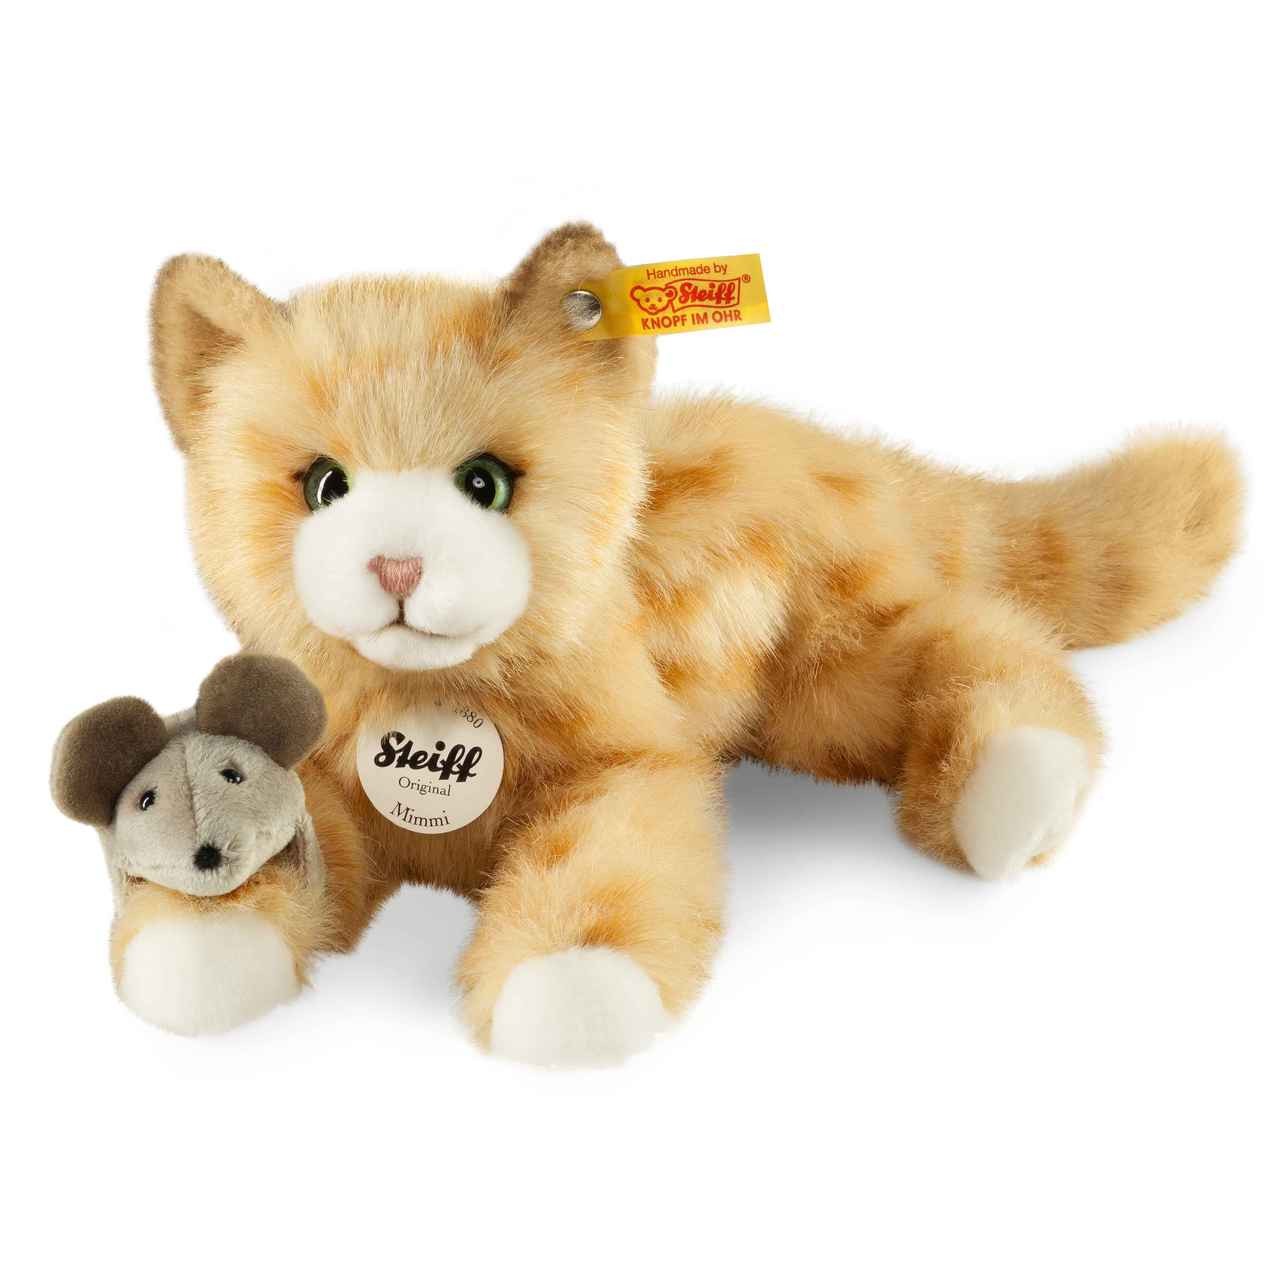 10 Inches Steiff Lizzy Kitten Red Tabby Cat Plush Toy